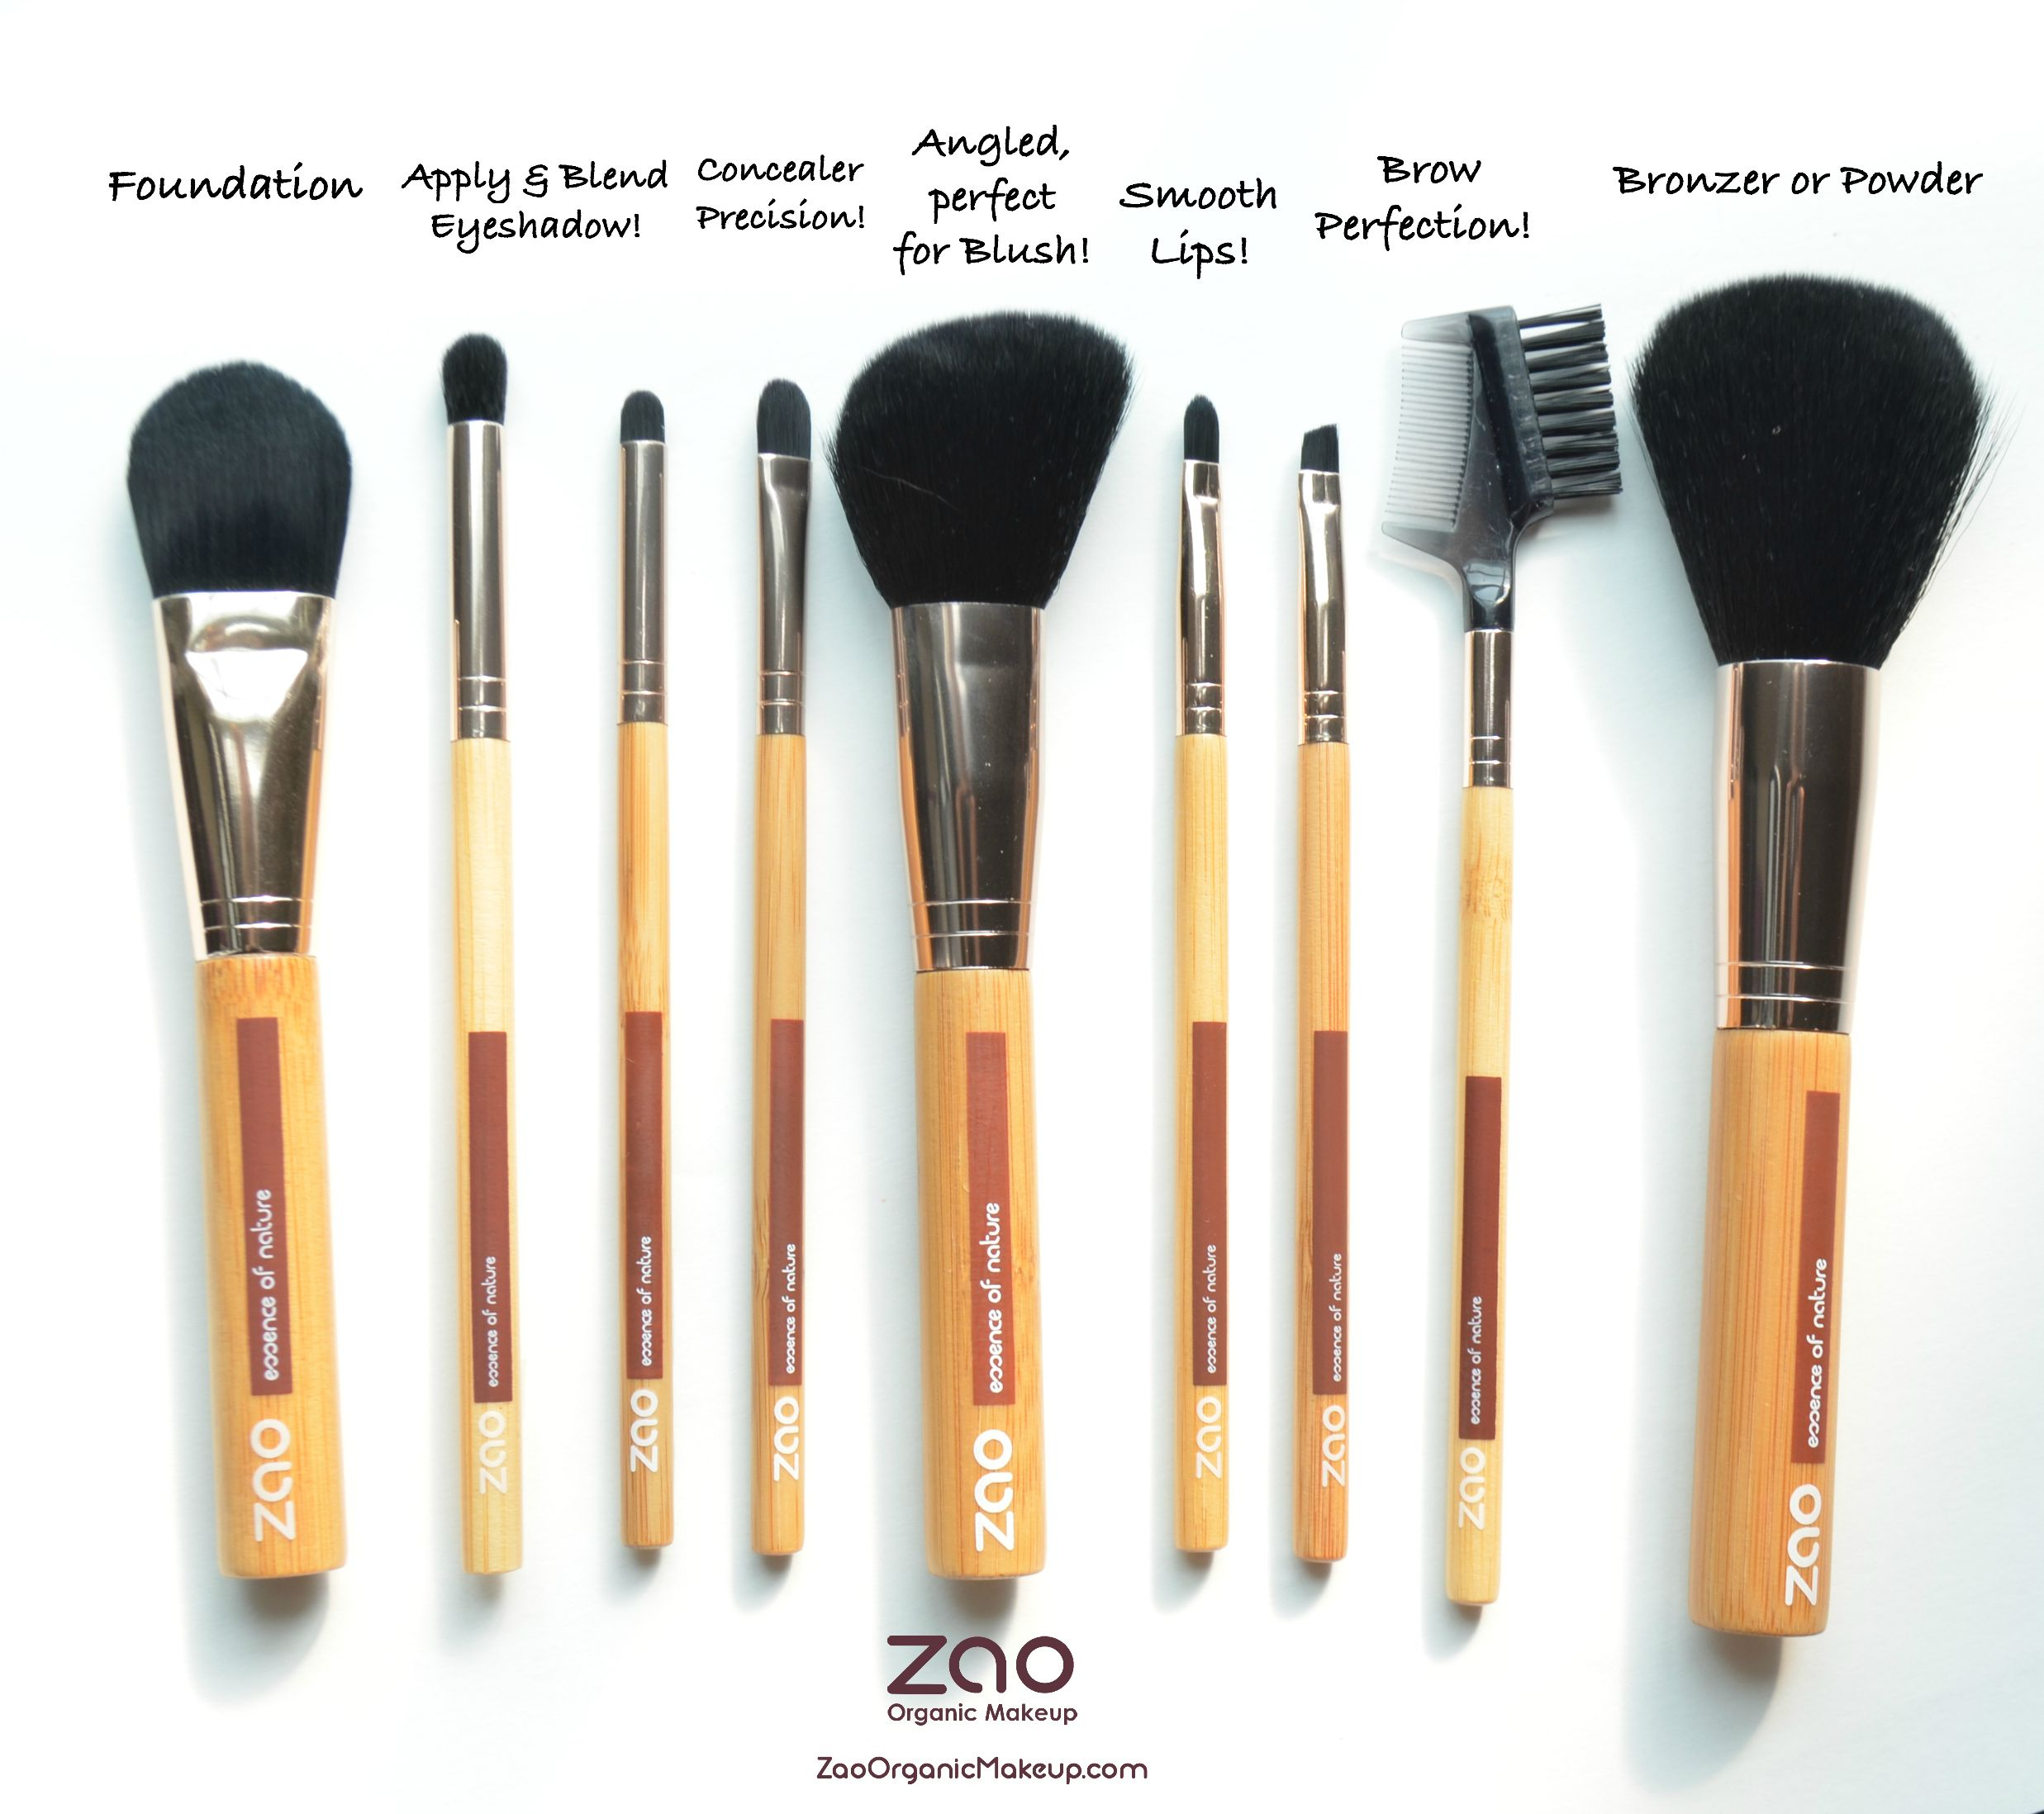 Synthetic Brushes Don T Have A Cuticle This Makes Them Great To Use With Liquid Cream Products Or Product Organic Makeup Brushes Simple Skincare Bio Oil Skin